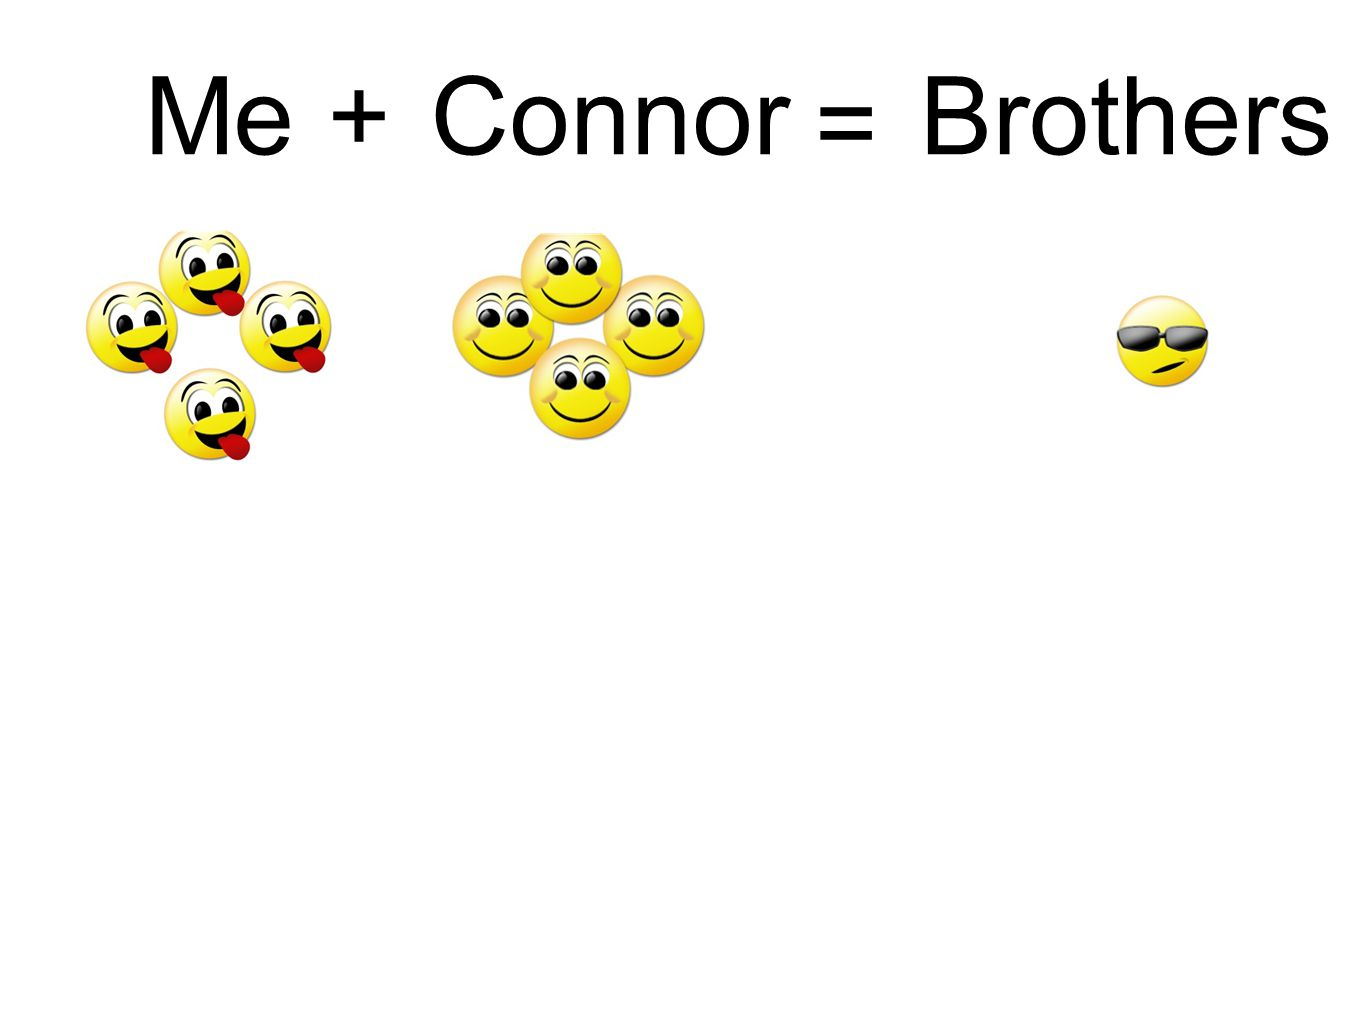 Me+ Connor = Brothers